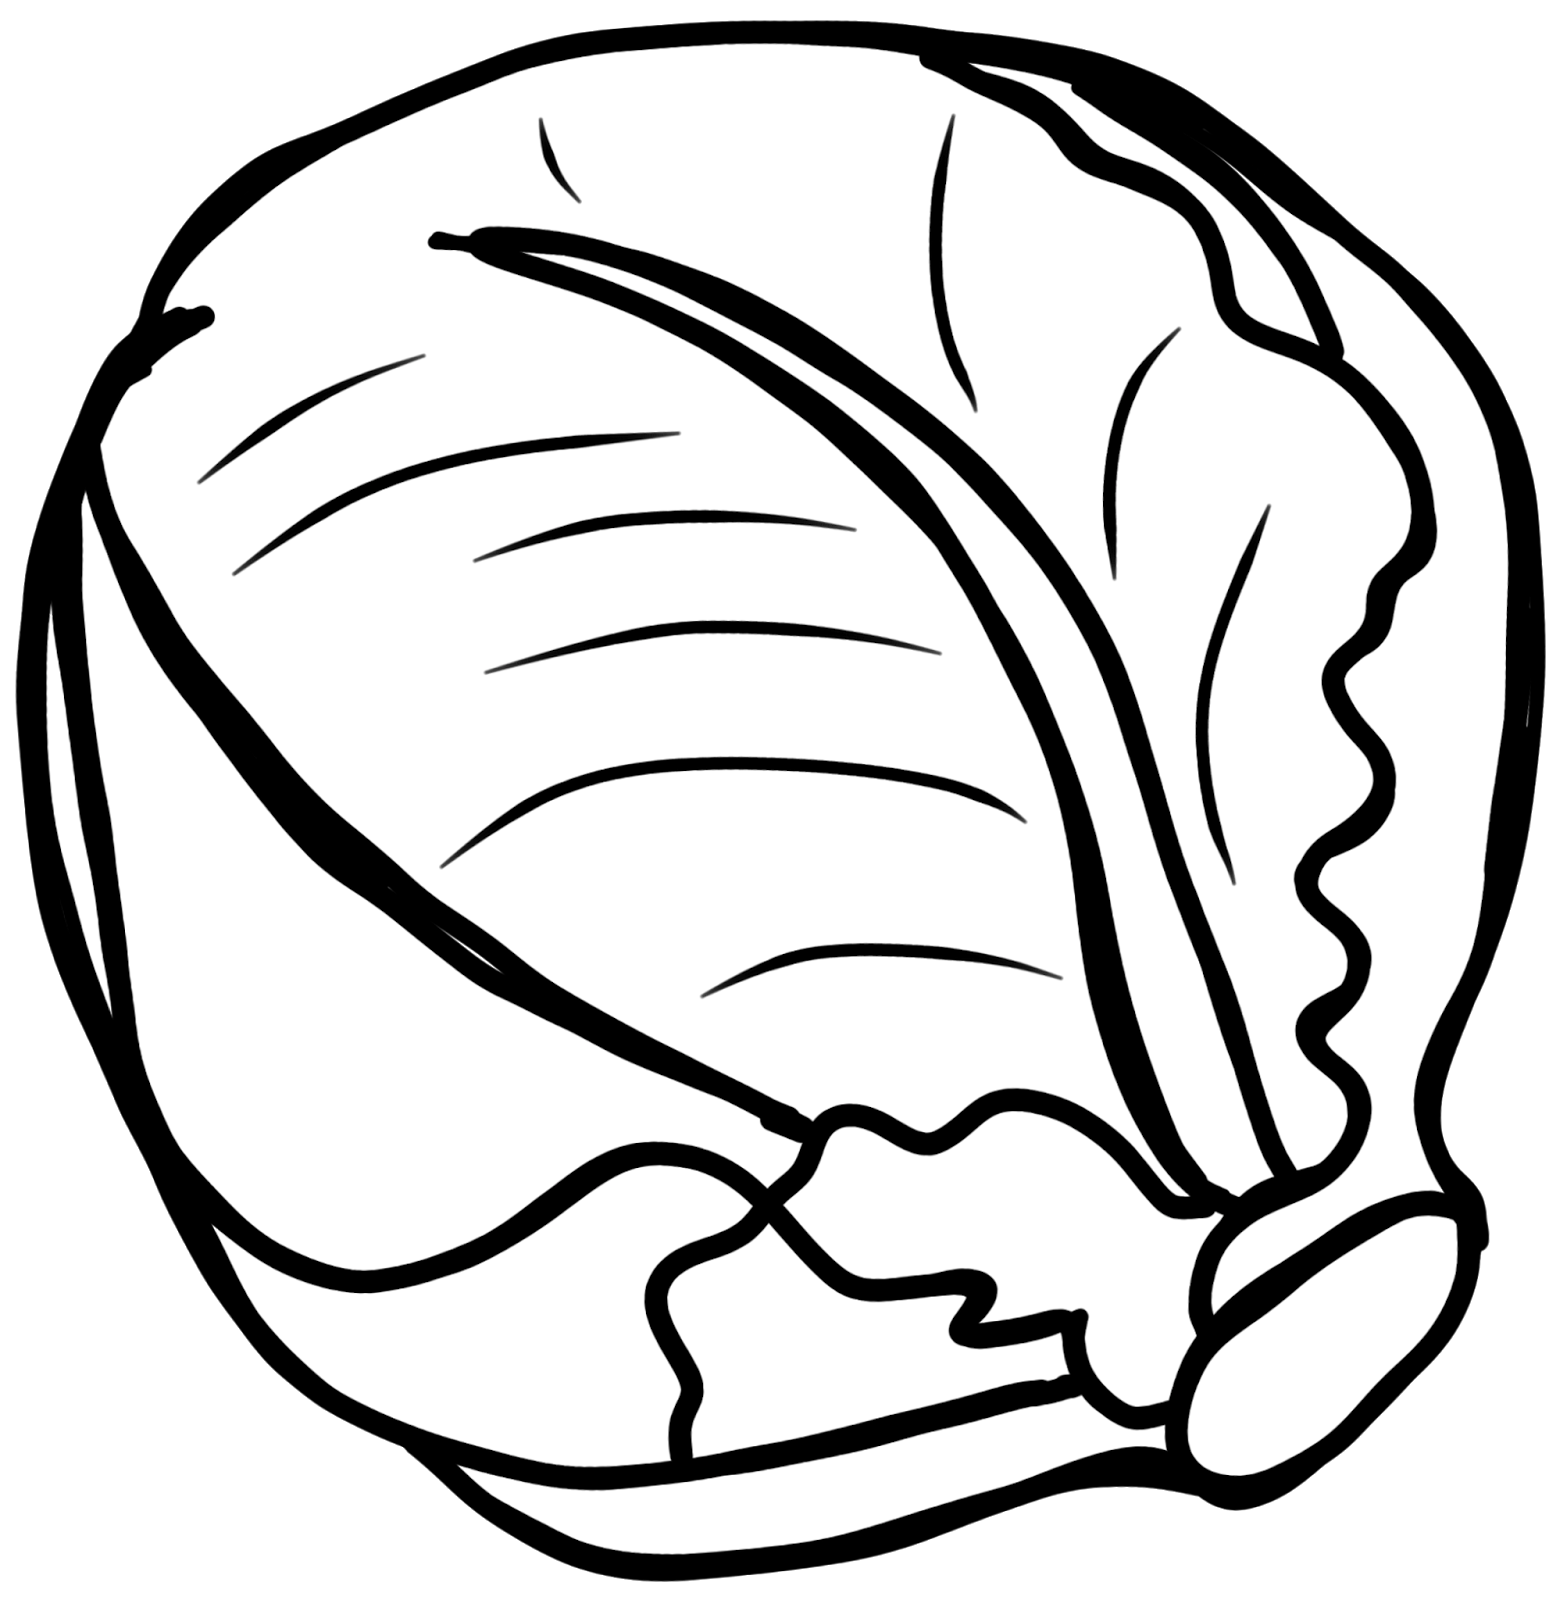 Cabbage clipart black and white Cabbage org  Cabbage clipart